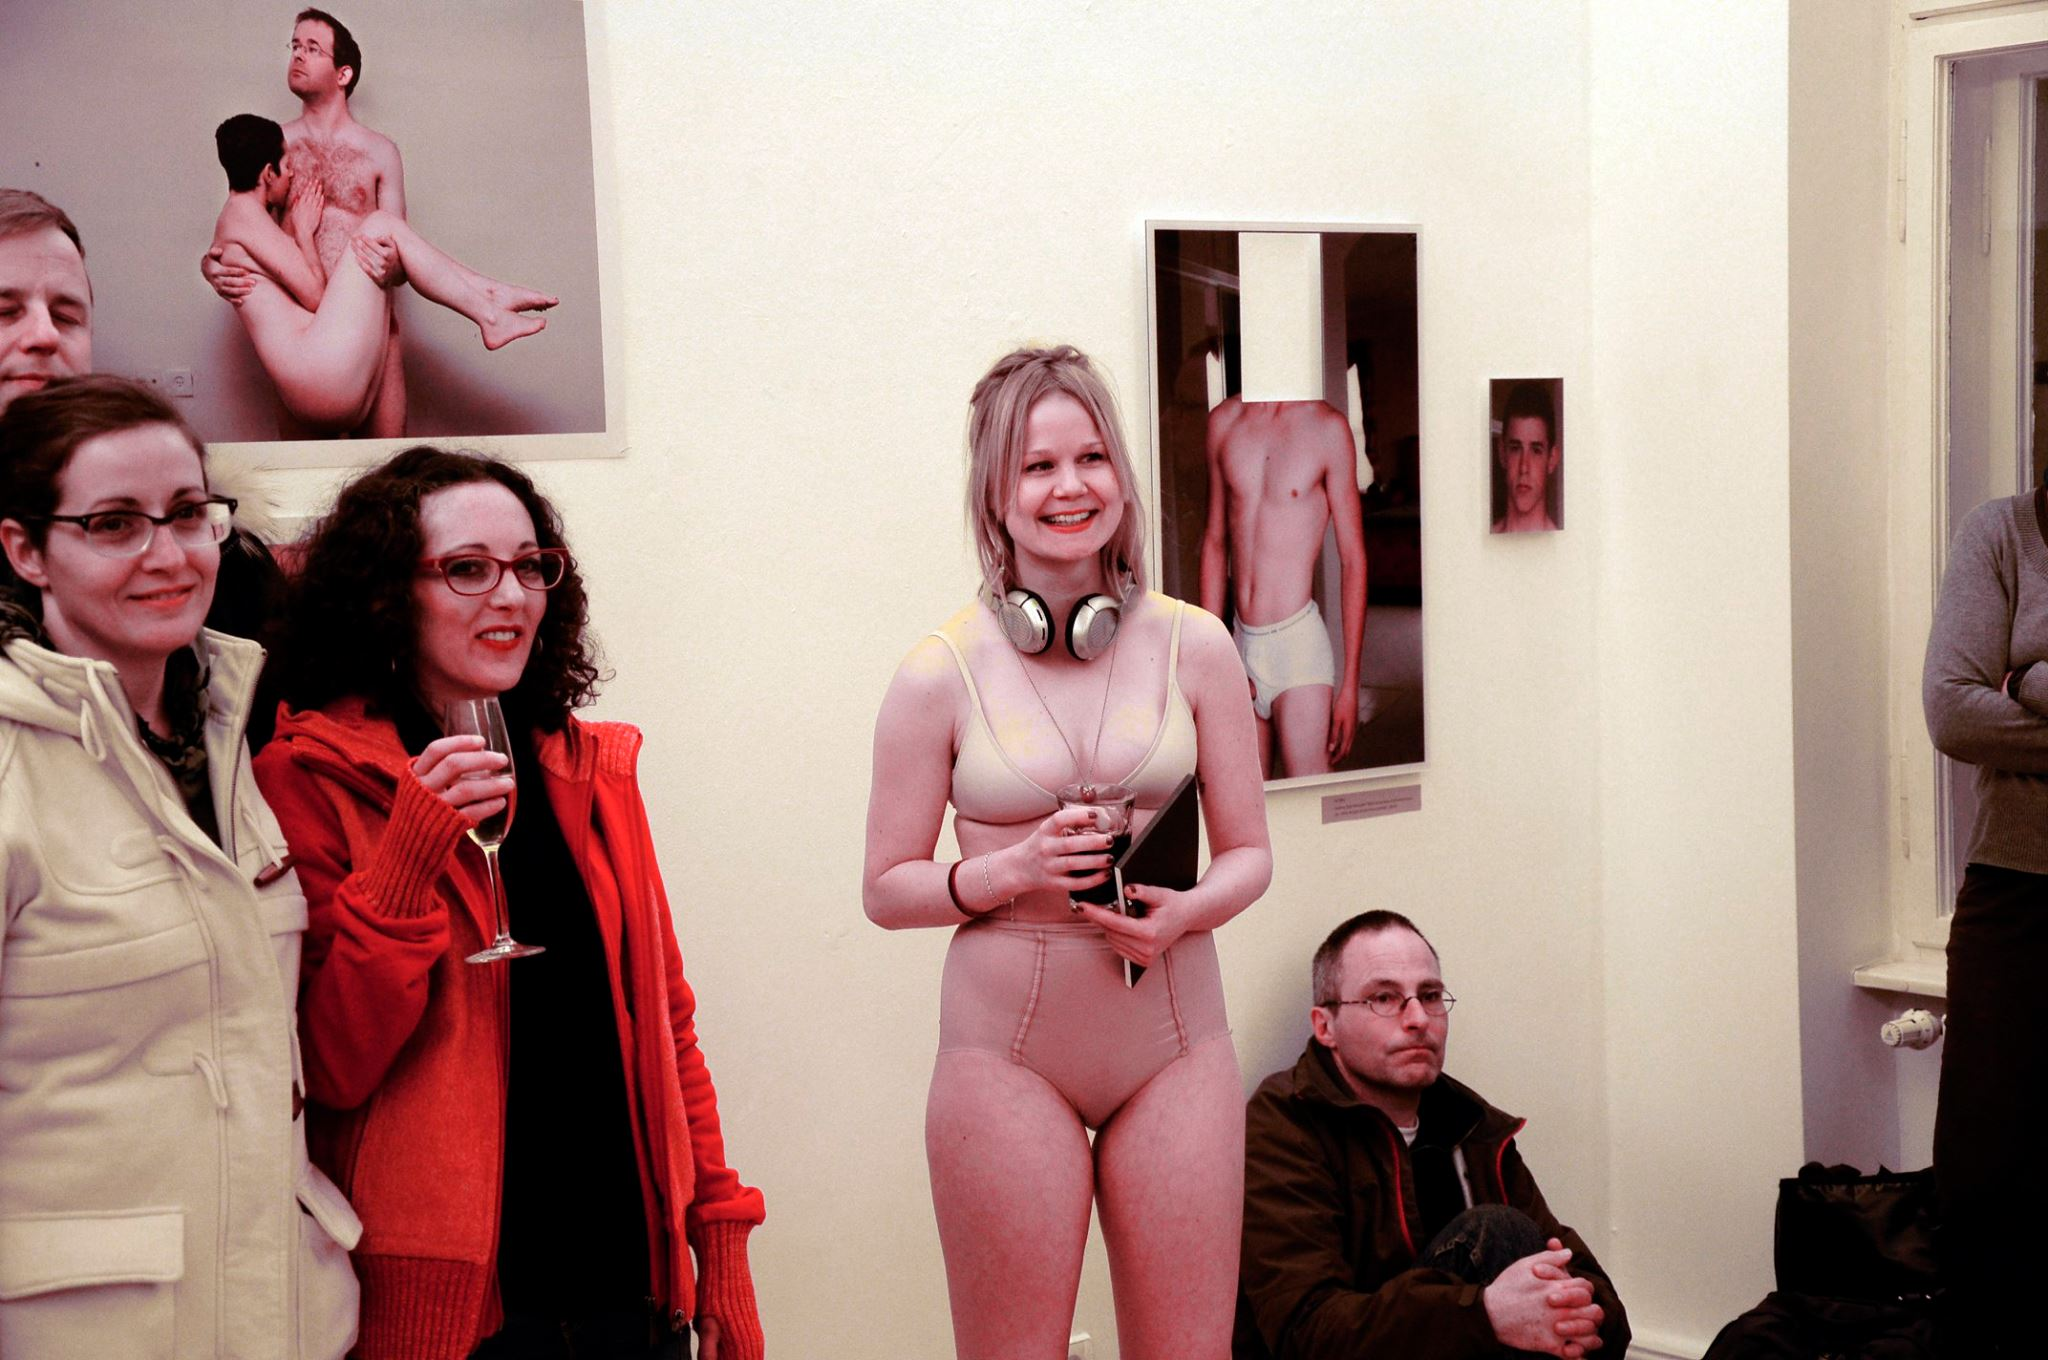 Vernissage: Sex Macht Gut, Berlin, Sprechsaal  März 2015, Photos - courtesy of Helena Guifrida